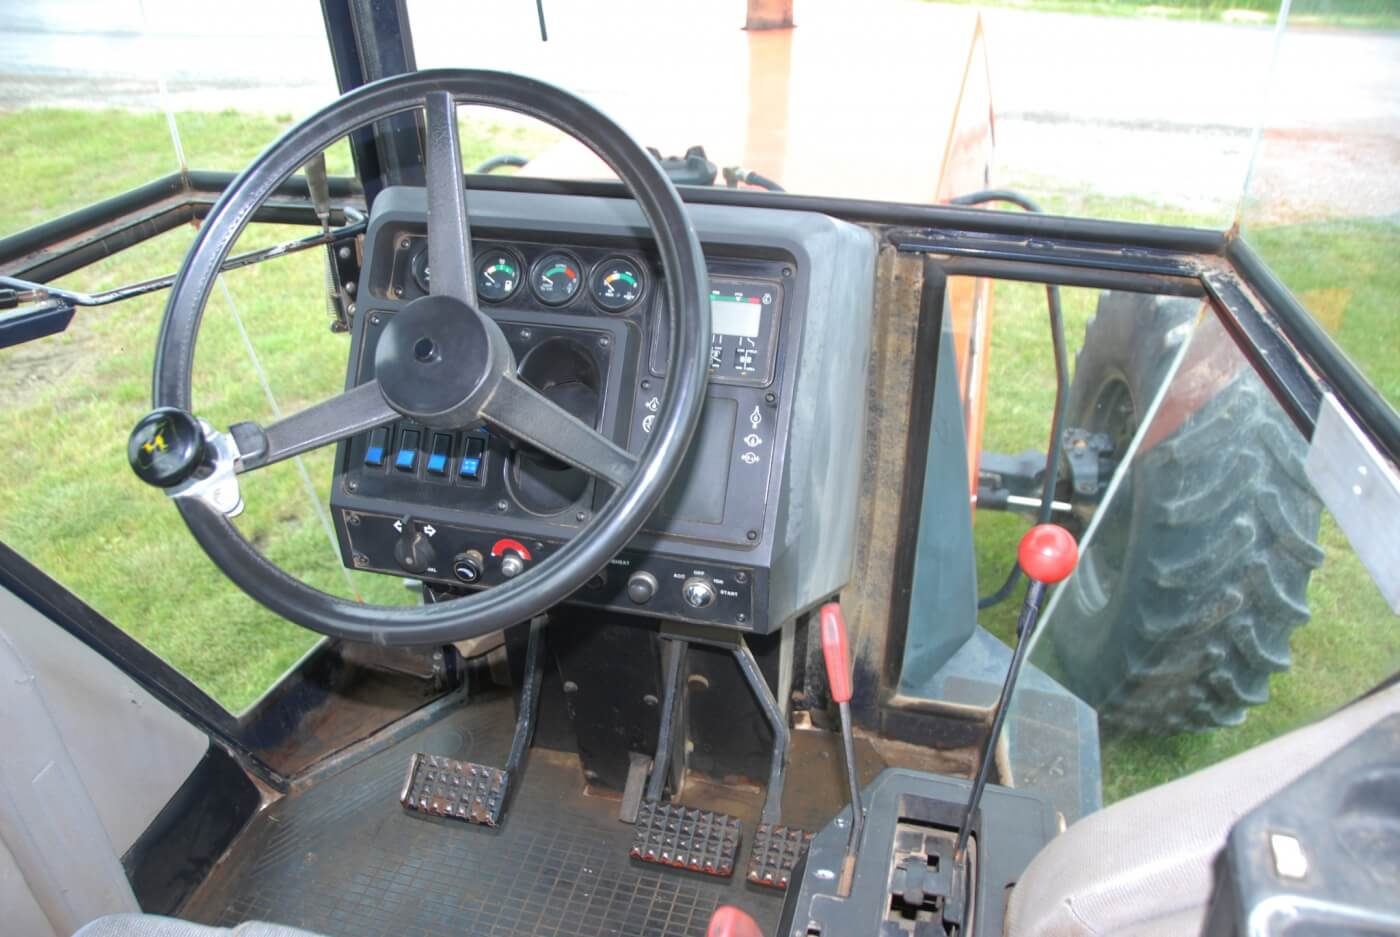 The control layout had a slightly Euro flair to it but still was comprehensible to American farmers. Some of the KHD-built tractors didn't have that quality. The 9190 was in the upper tier of operator comfort and can still hold its own in that regard.